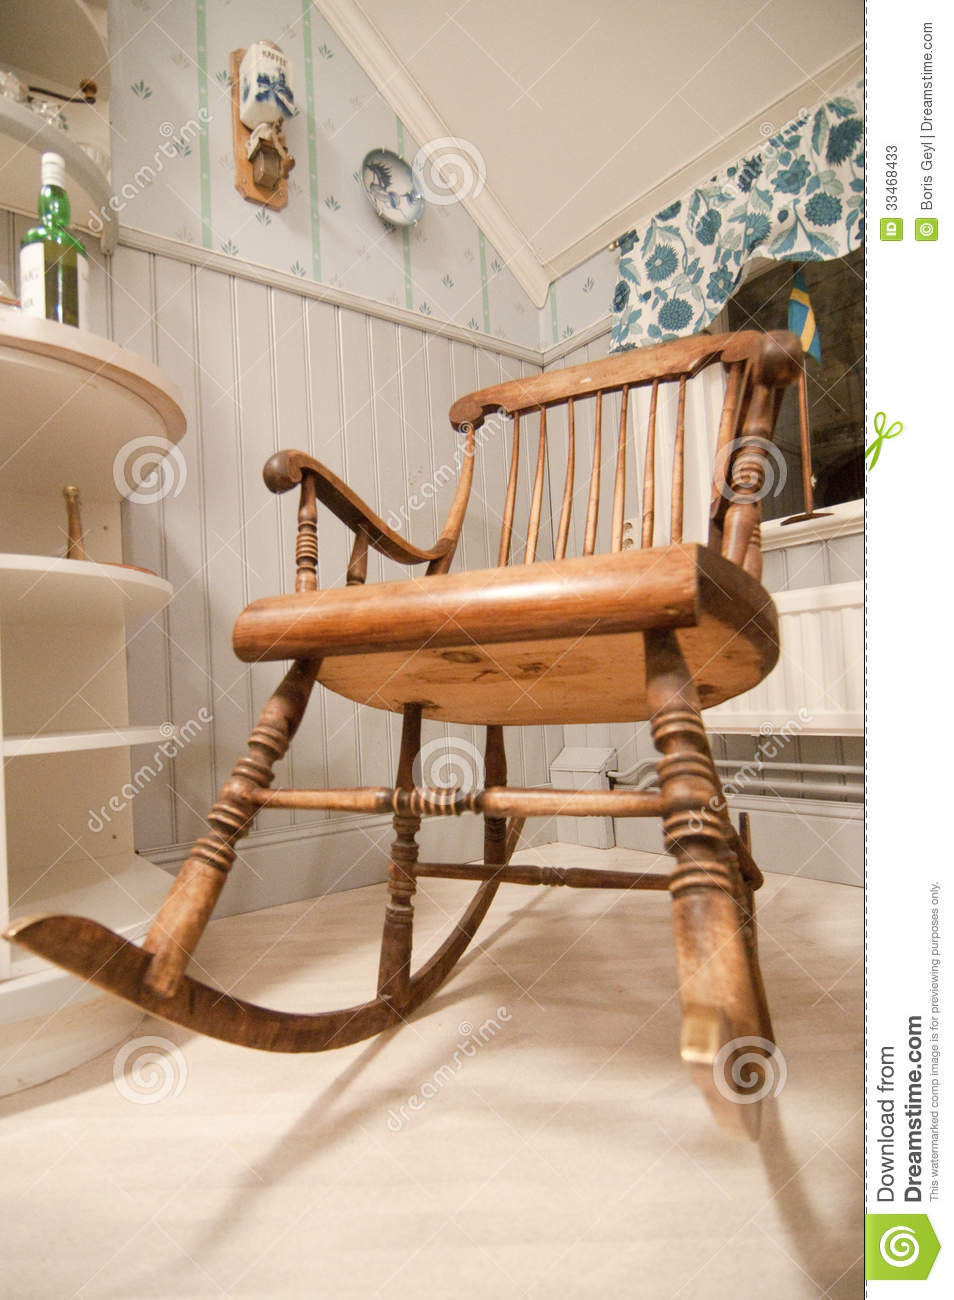 Old Rocking Chair Stock Photos - Image: 33468433